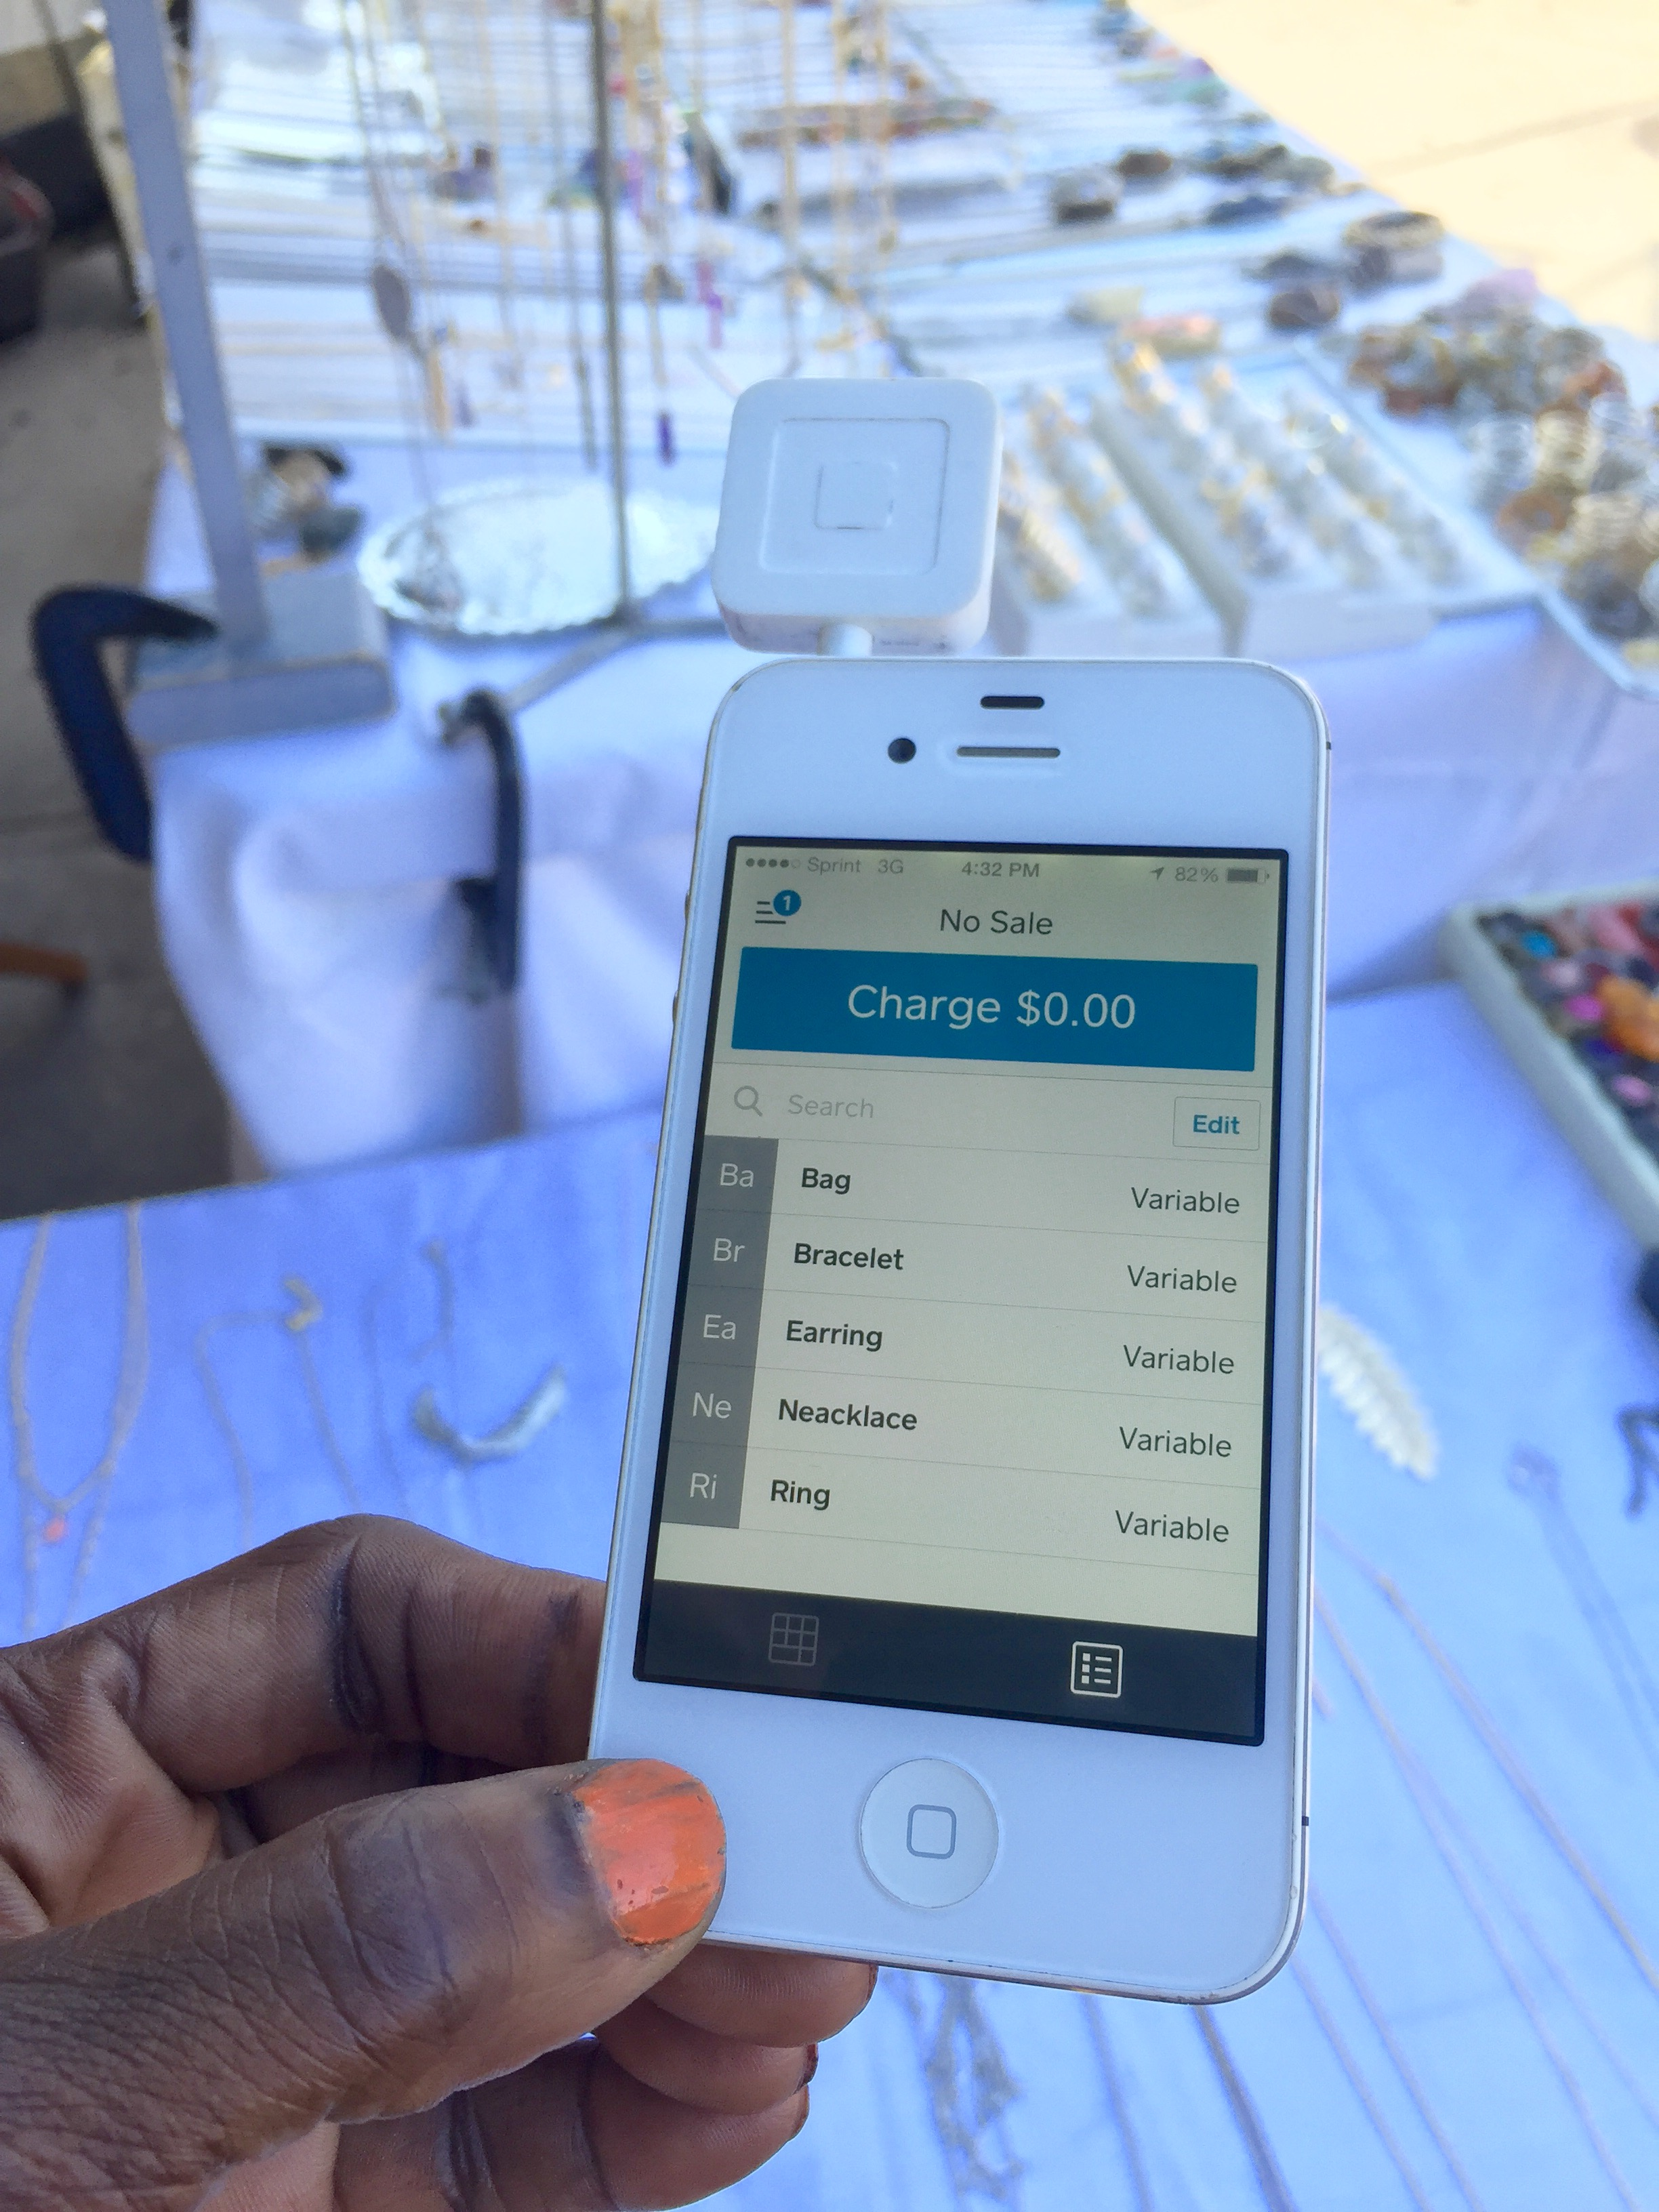 Technology Helps: A jewelry vendor at an outdoors craft market holds her credit card reader attached to a smart device for mobile point of sales activity